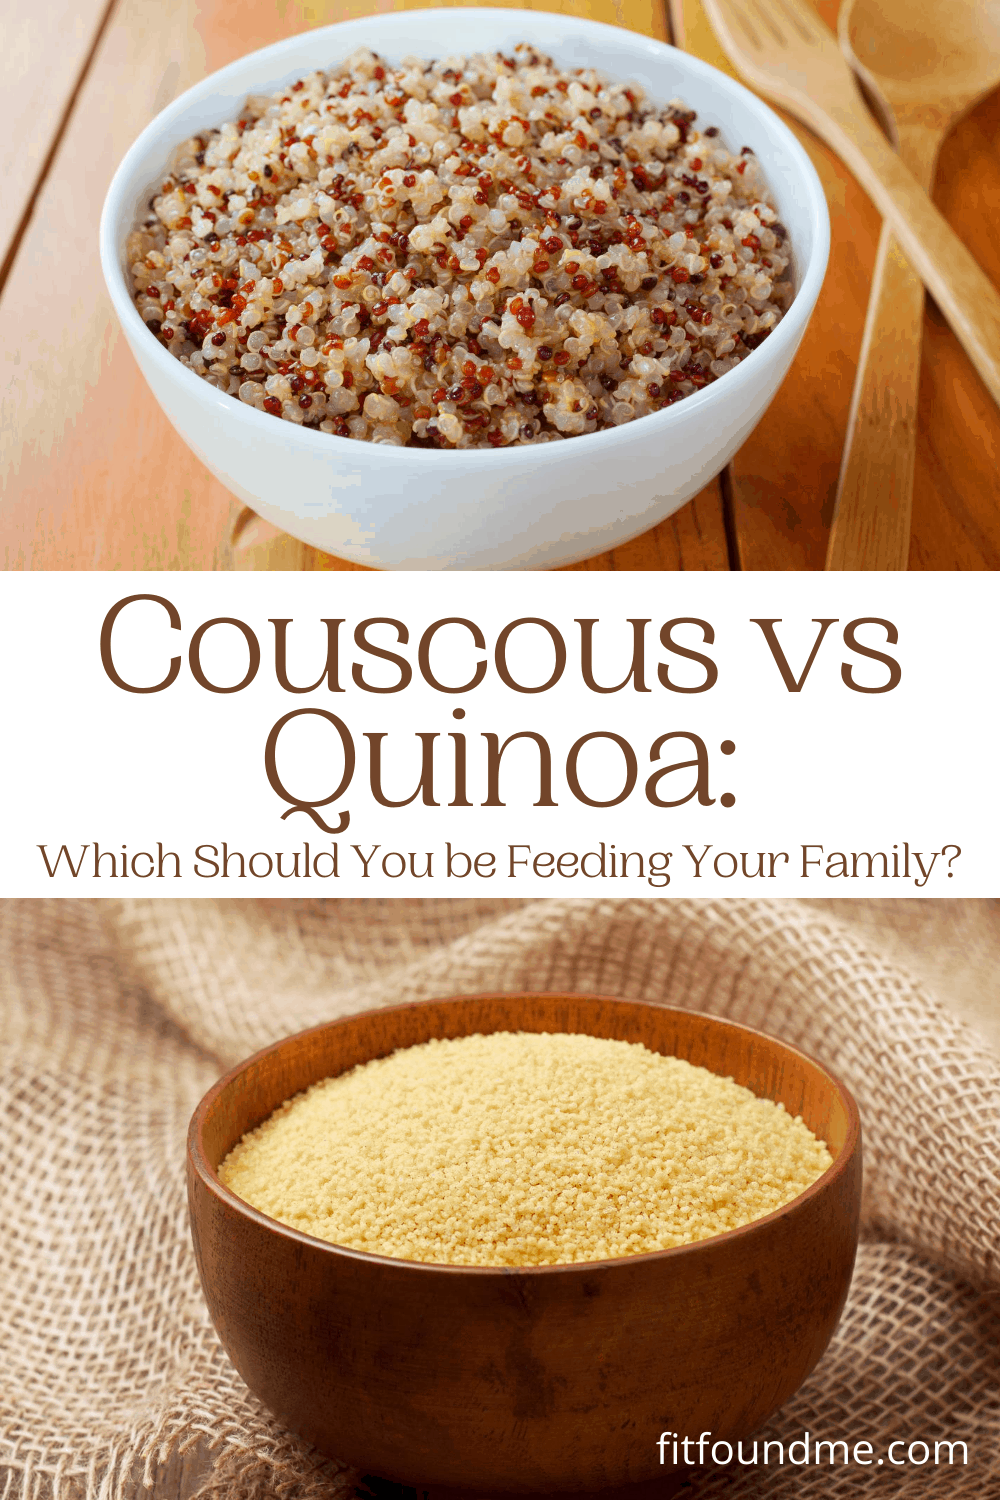 Couscous vs quinoa is a great question for those of us just starting to eat healthier after 40. It was all mashed potatoes and pasta as staples until a few years ago at our house. As I have transitioned to healthier meals, couscous and quinoa have made it to my shopping lists. Maybe you are asking the same questions I was - What should you be serving your family, couscous or quinoa? What is the difference between the two? via @fitfoundme